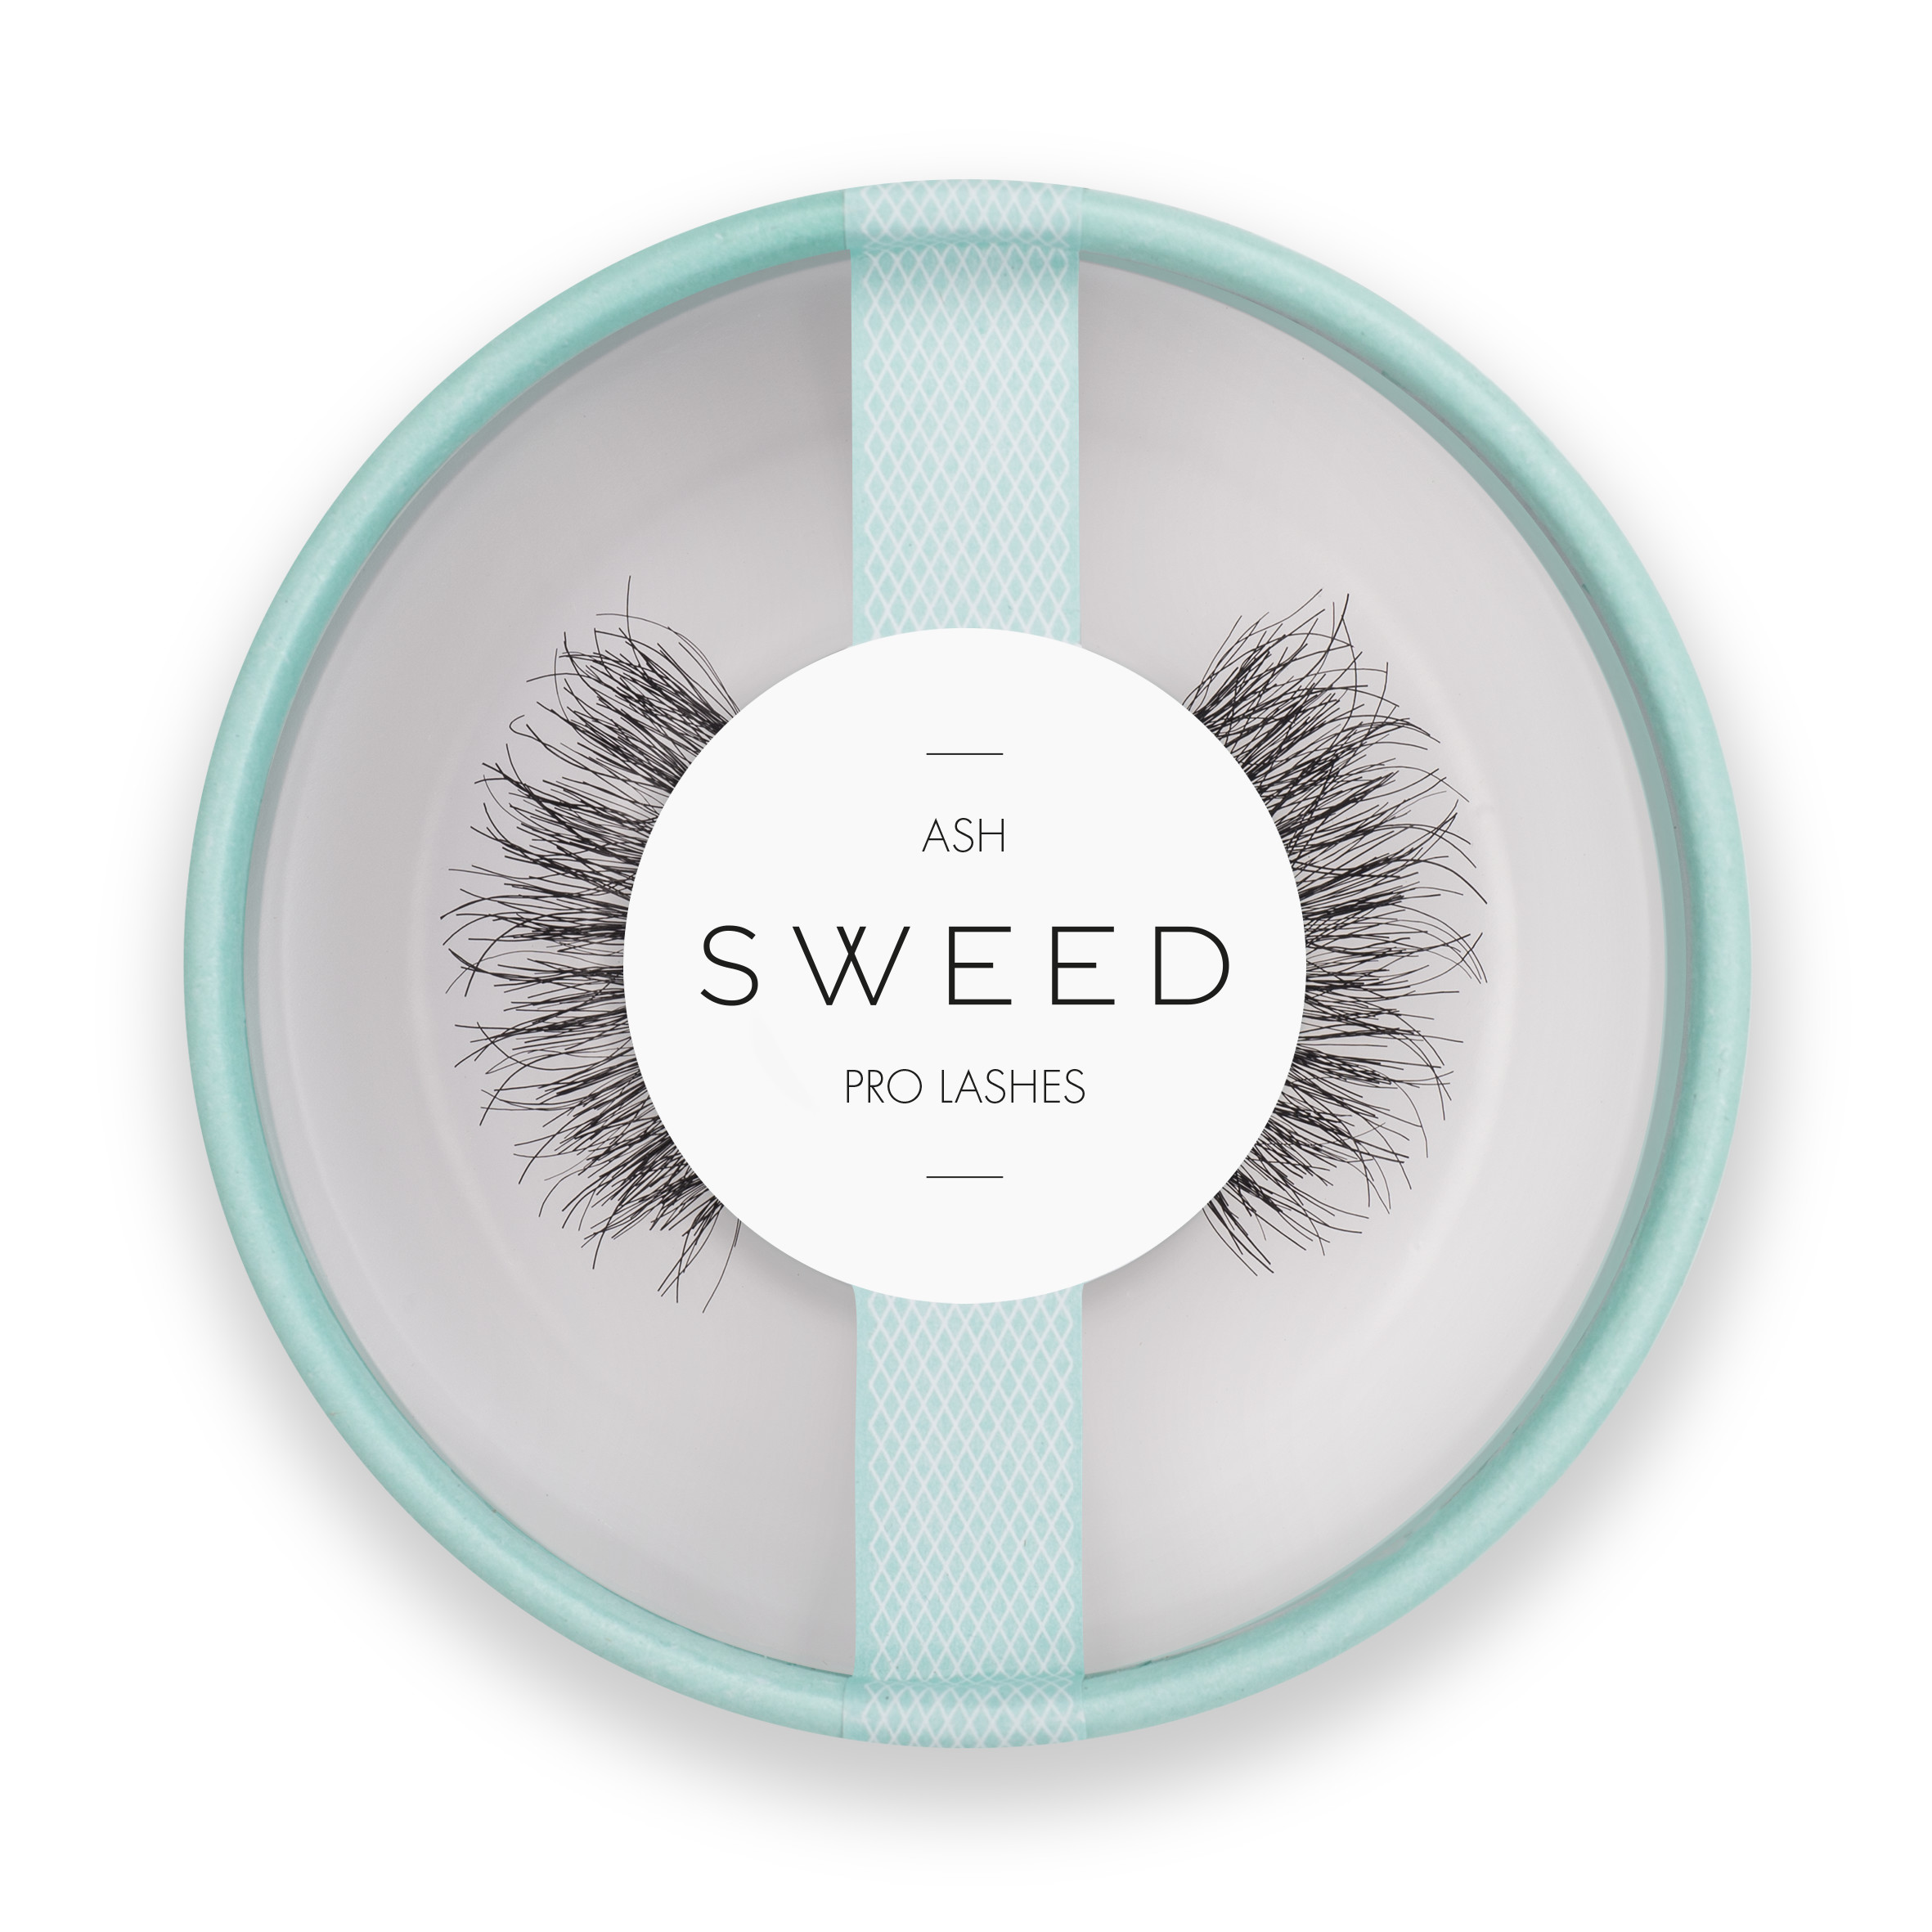 Sweed False Lashes Ash